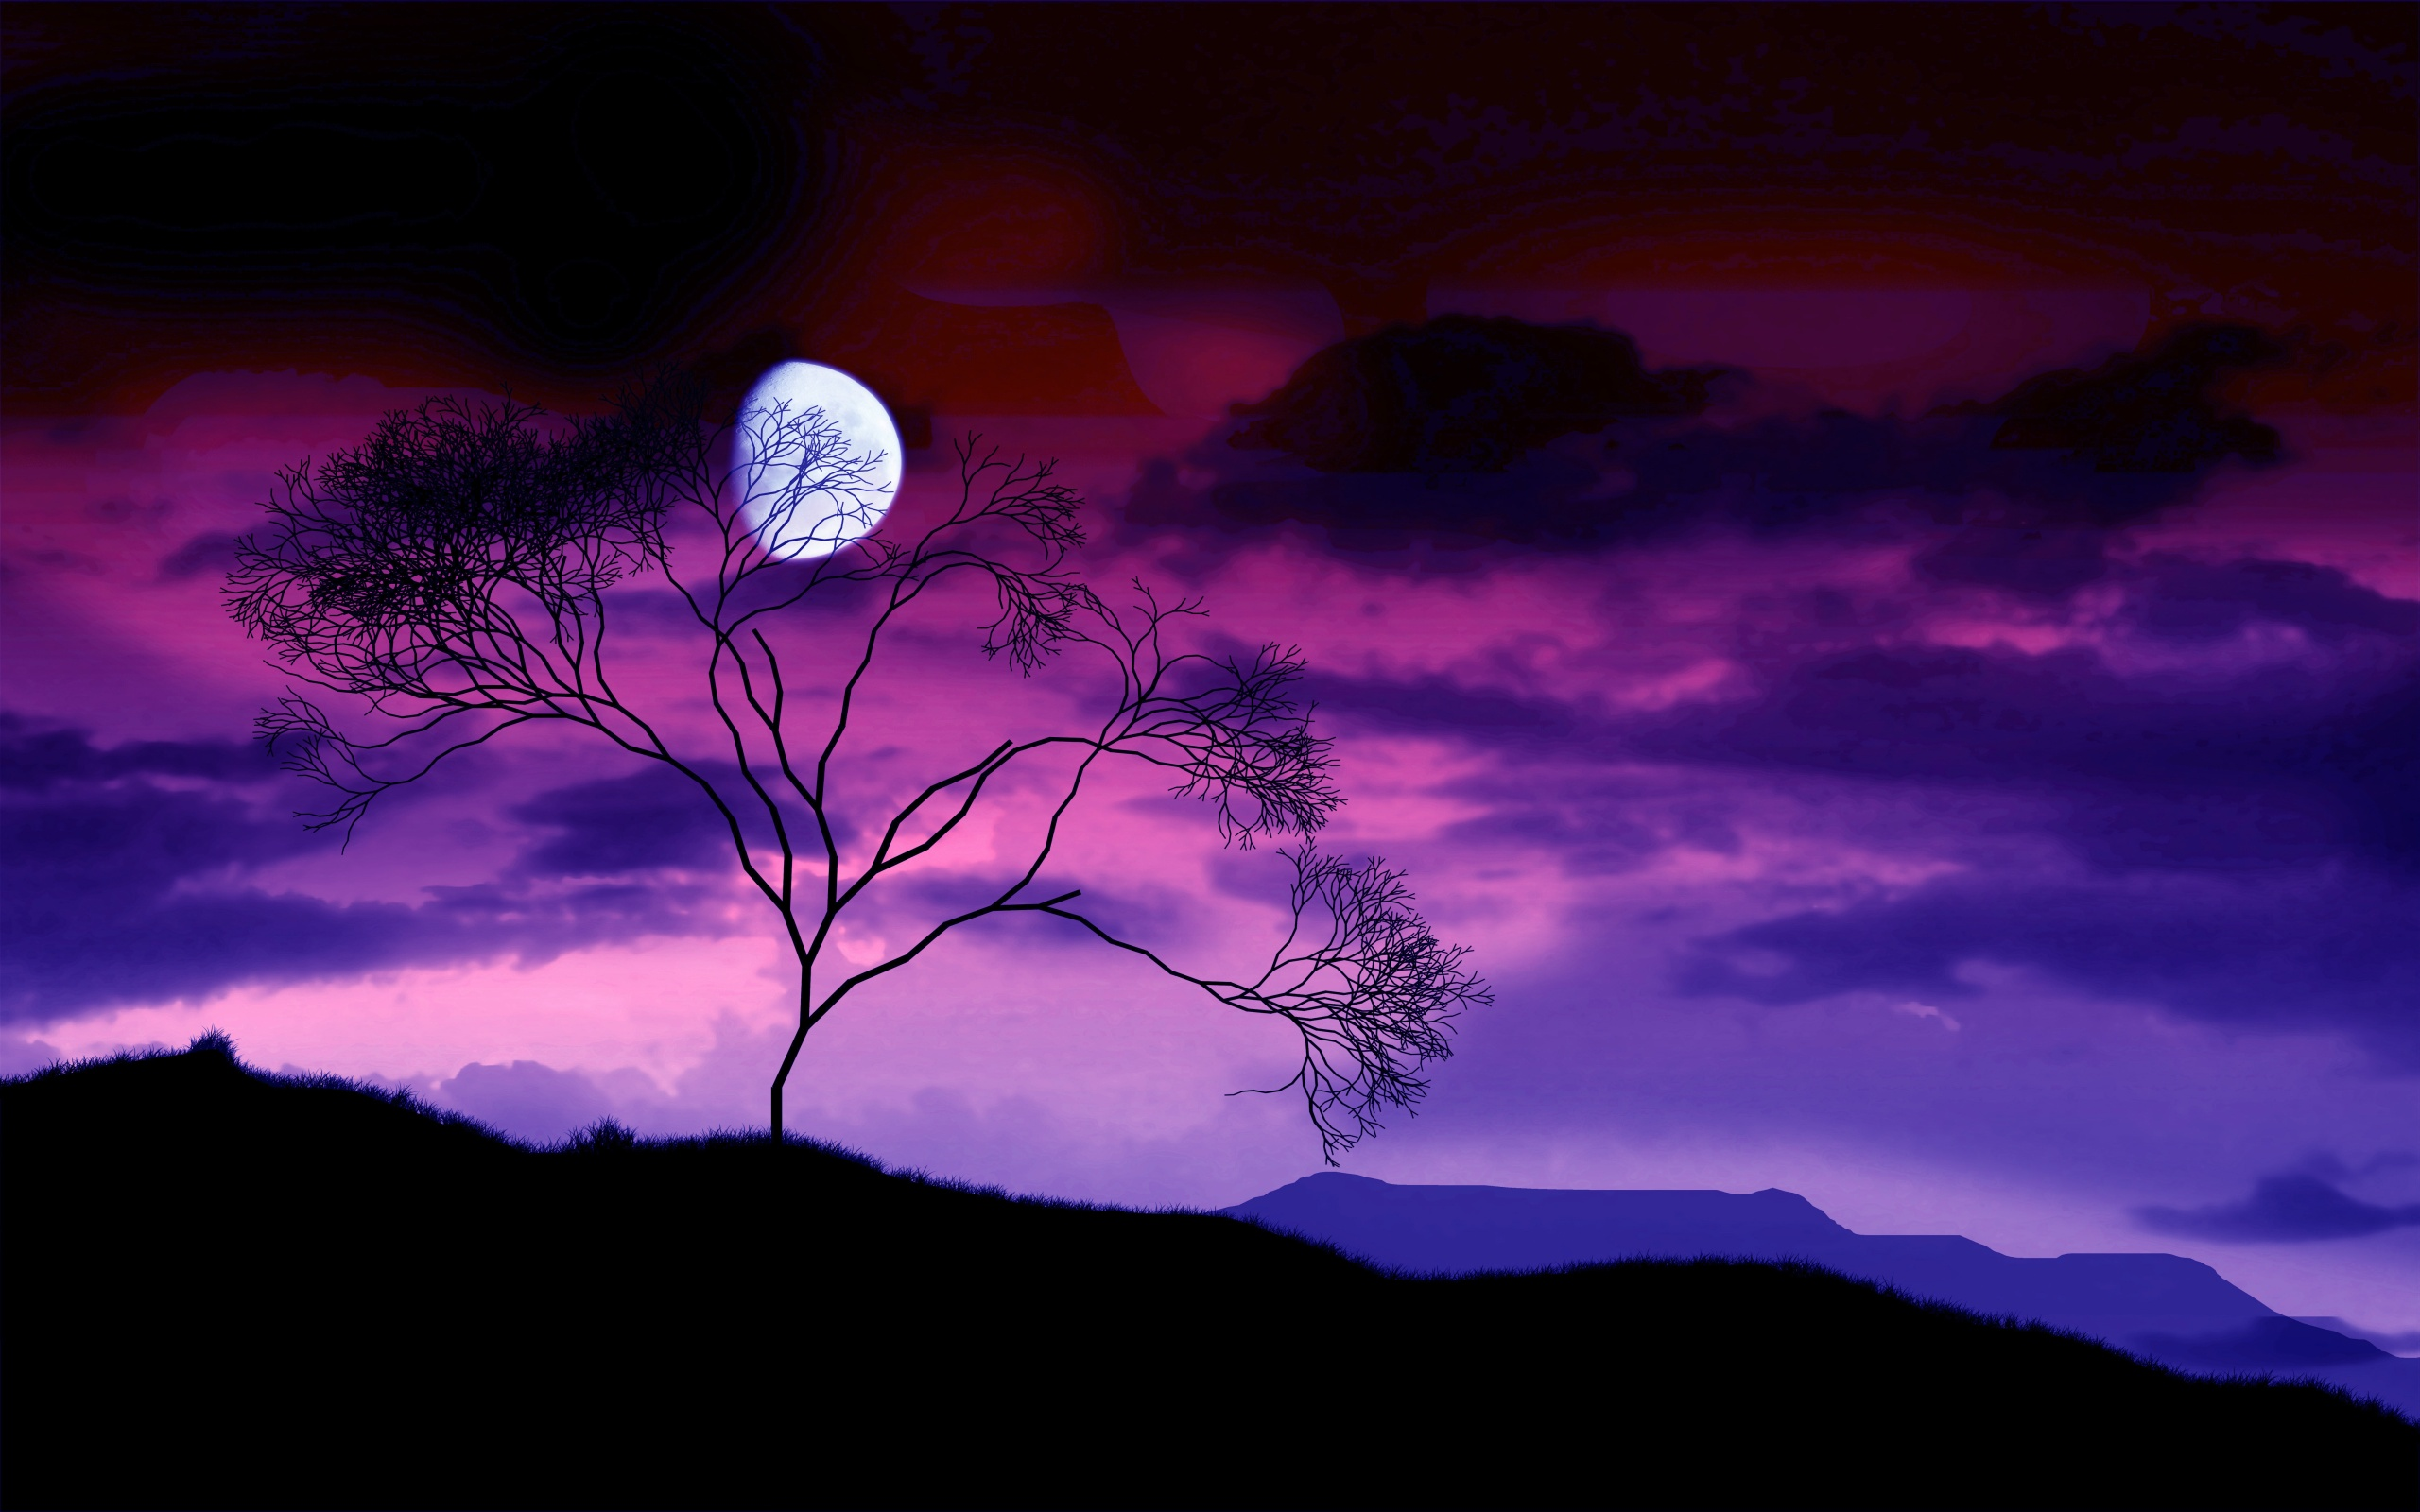 Awesome Moon Night Wallpaper 10390 Wallpaper High Resolution 2560x1600